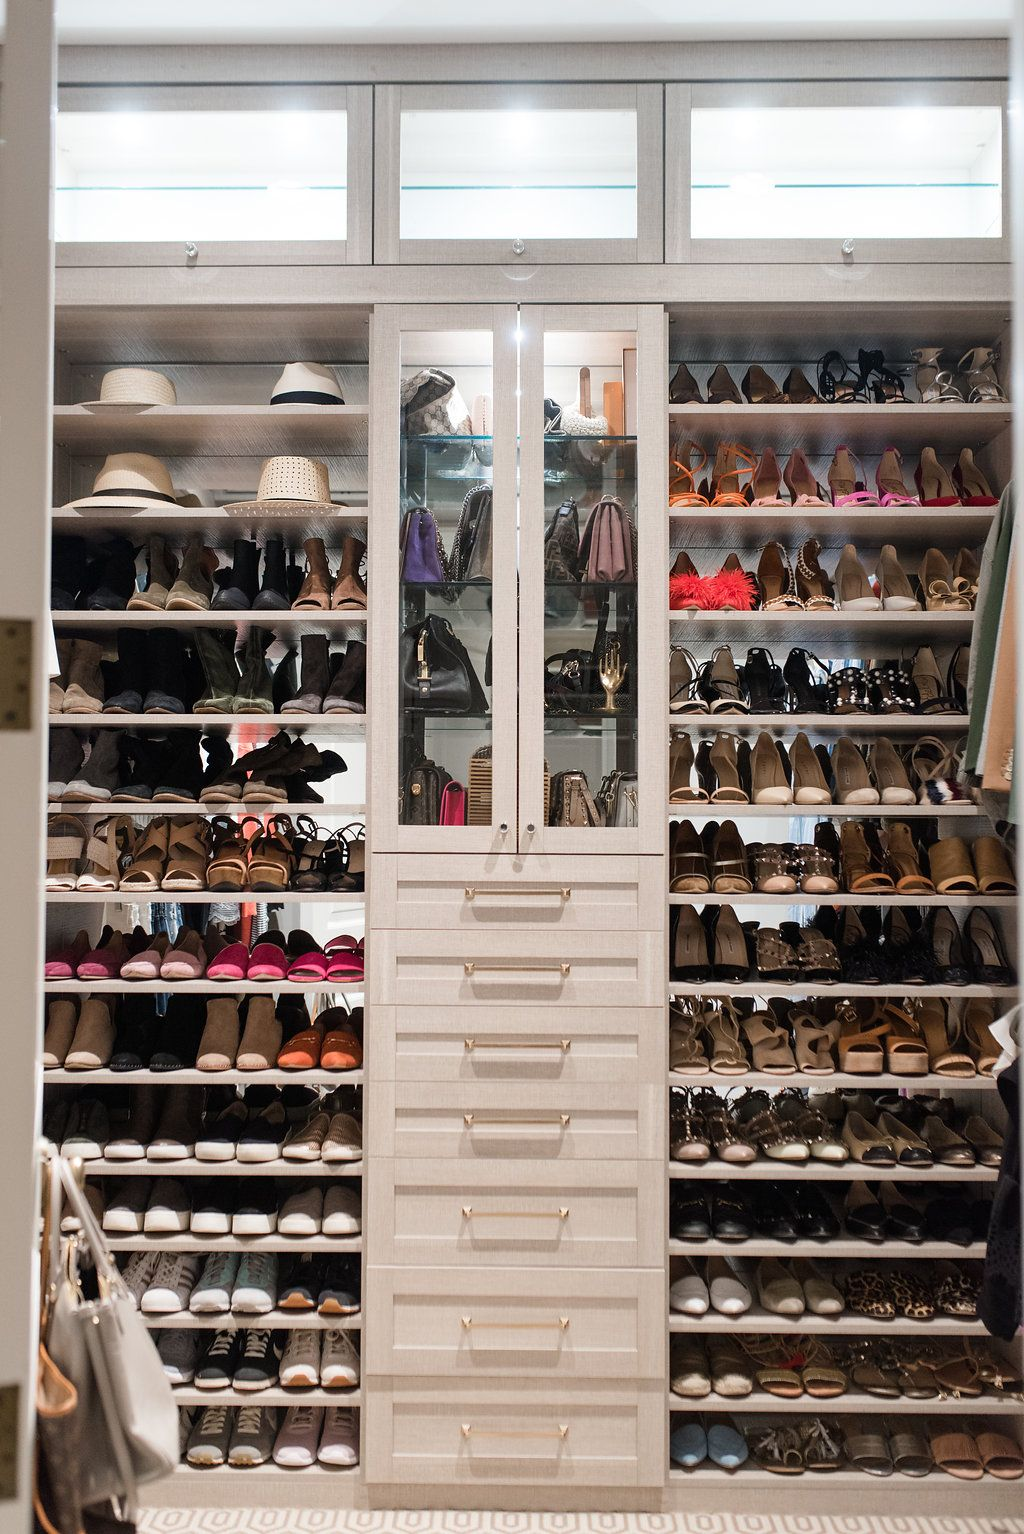 How To Easily Organize Your Closet - J Cathell